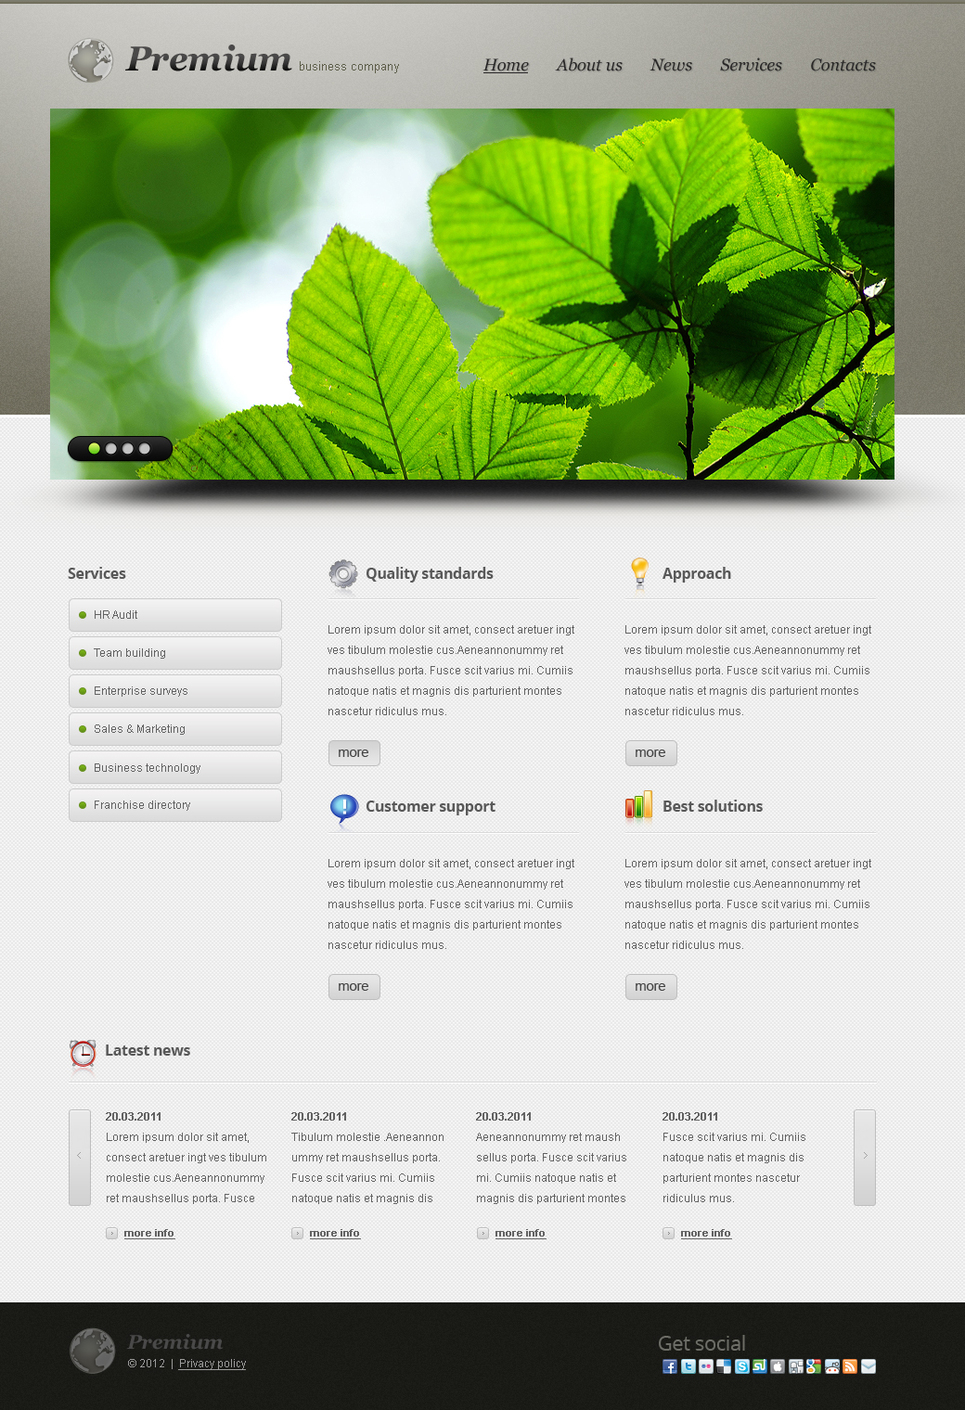 Fresh and Professional Business Company Website Template - image